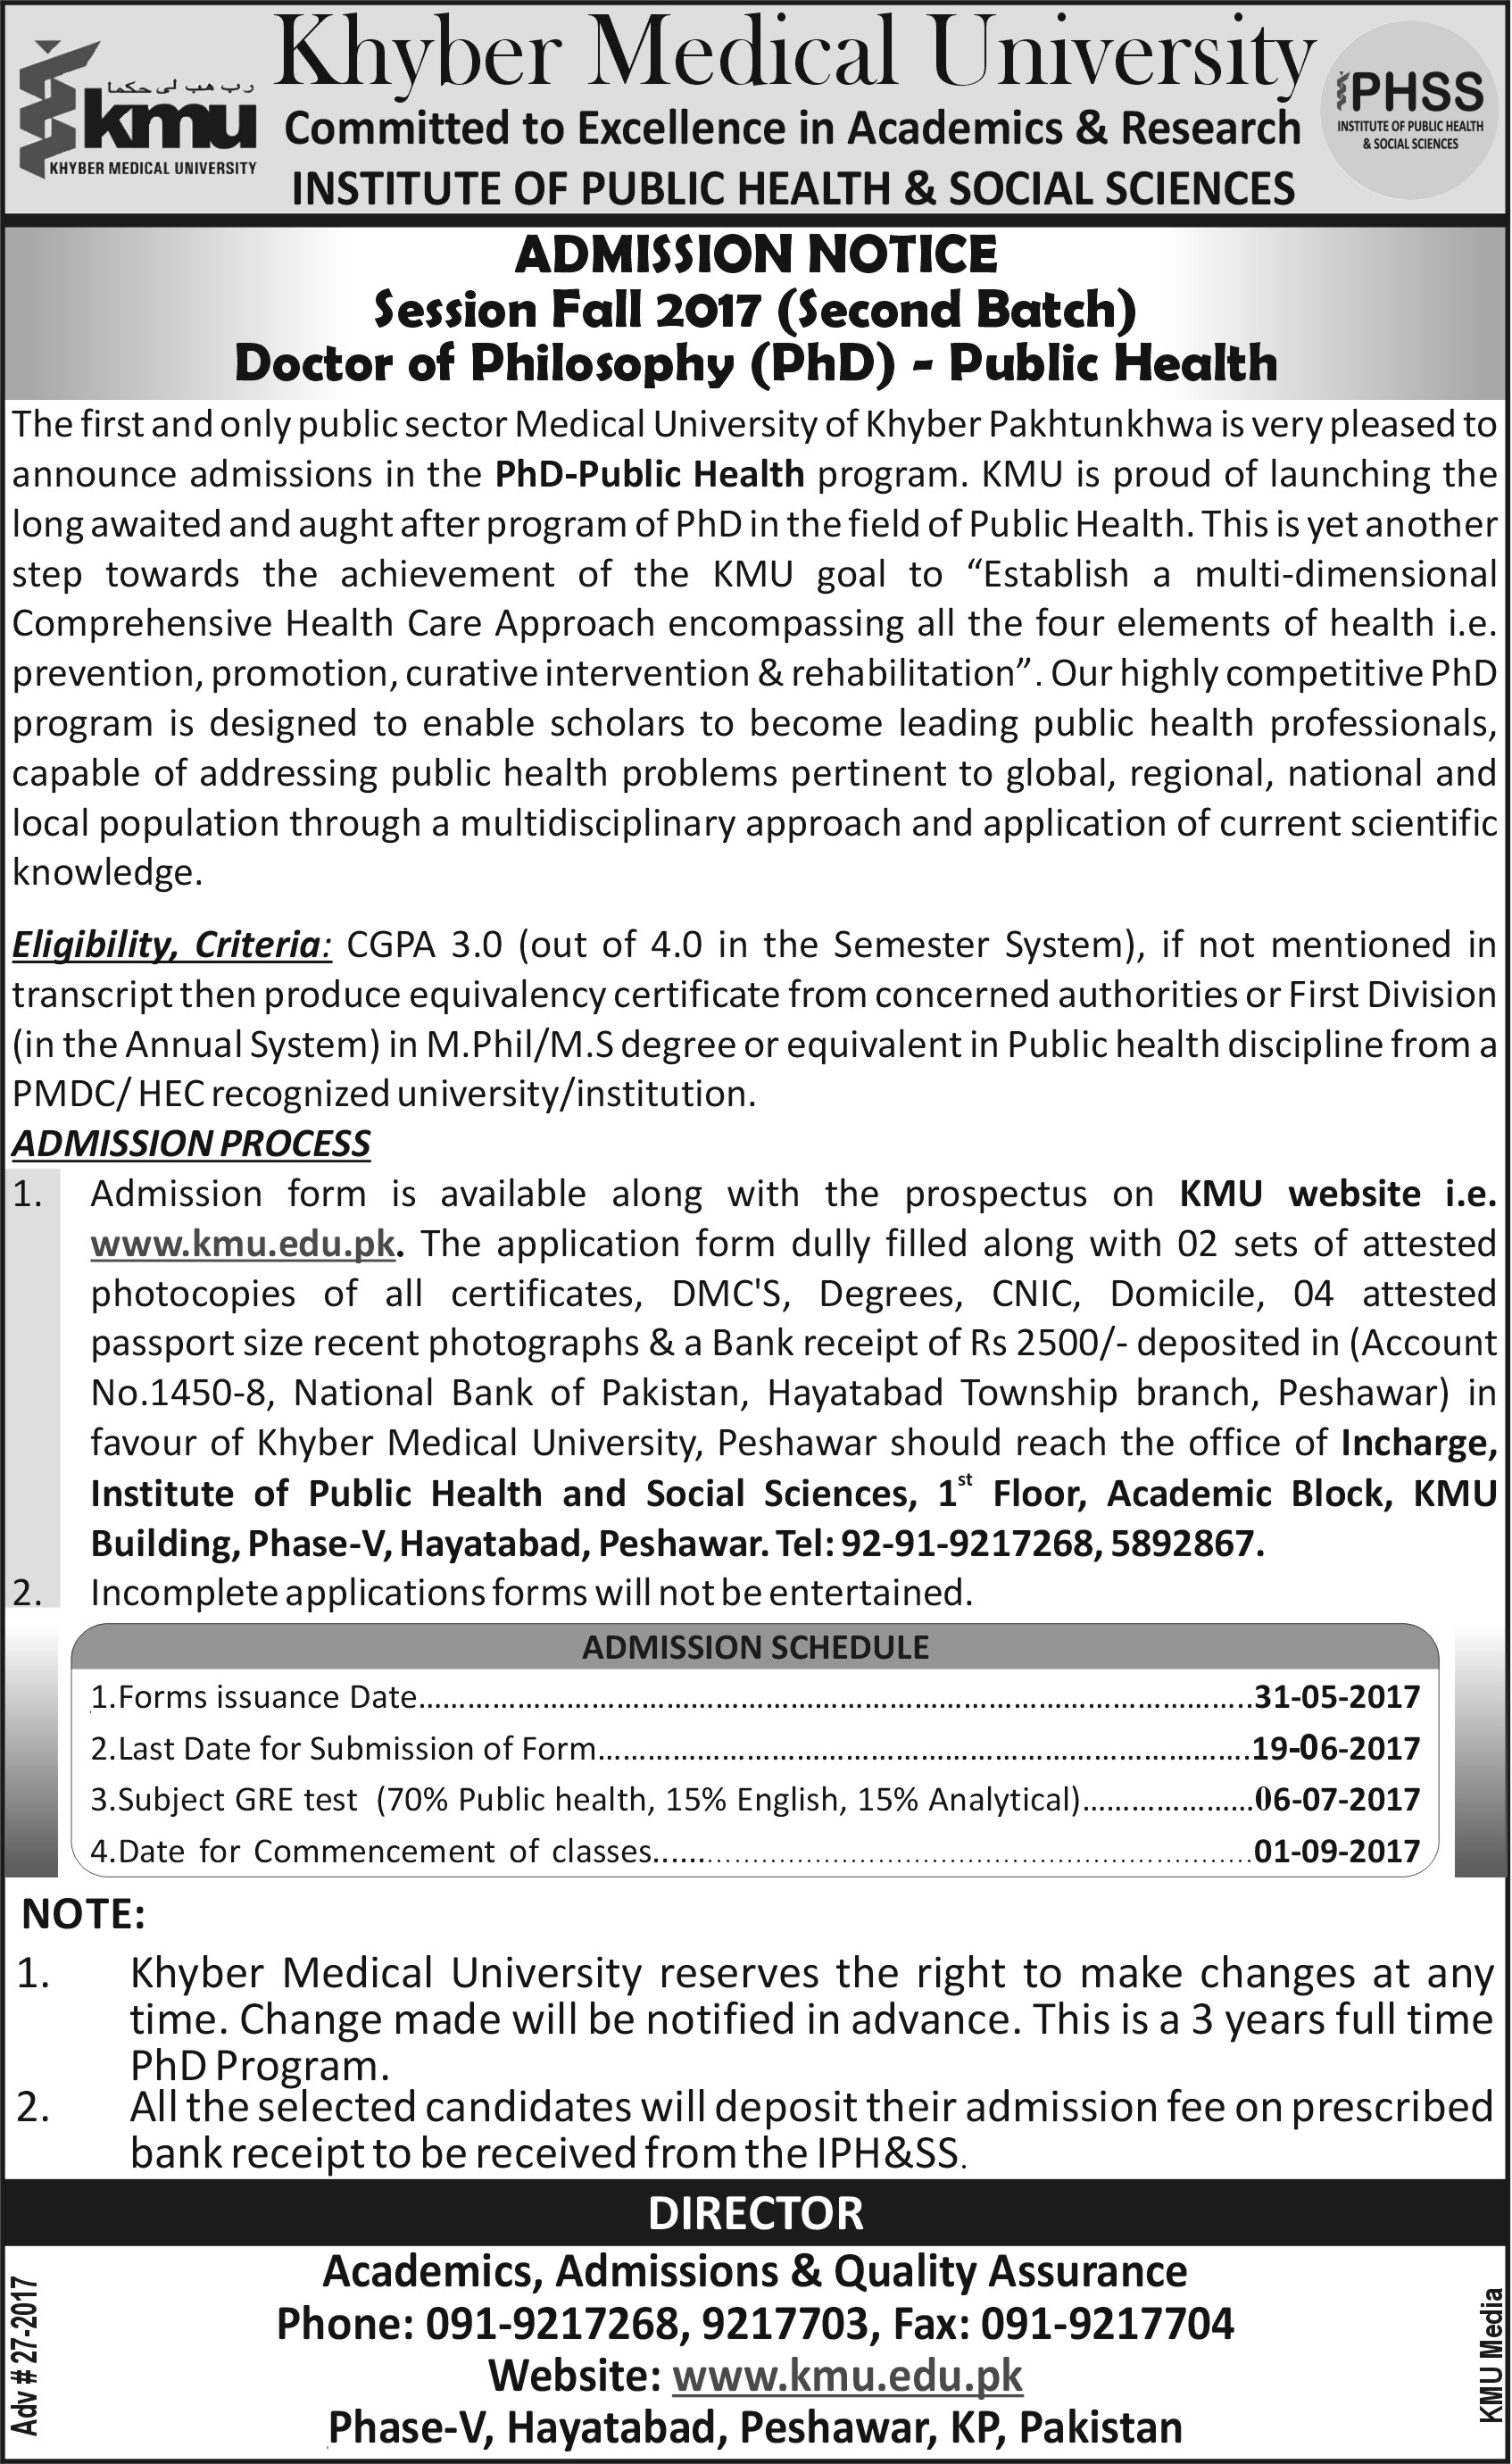 Admission%20Notice%20%28PhD%20in%20Public%20Health%29 Jinnah Medical College Admission Form on printable 9 employment, 941 quarterly tax, blank w2, civil service pds, irs tax, income tax, tax credit, nj state tax, print w2, california state tax, pennsylvania state tax,